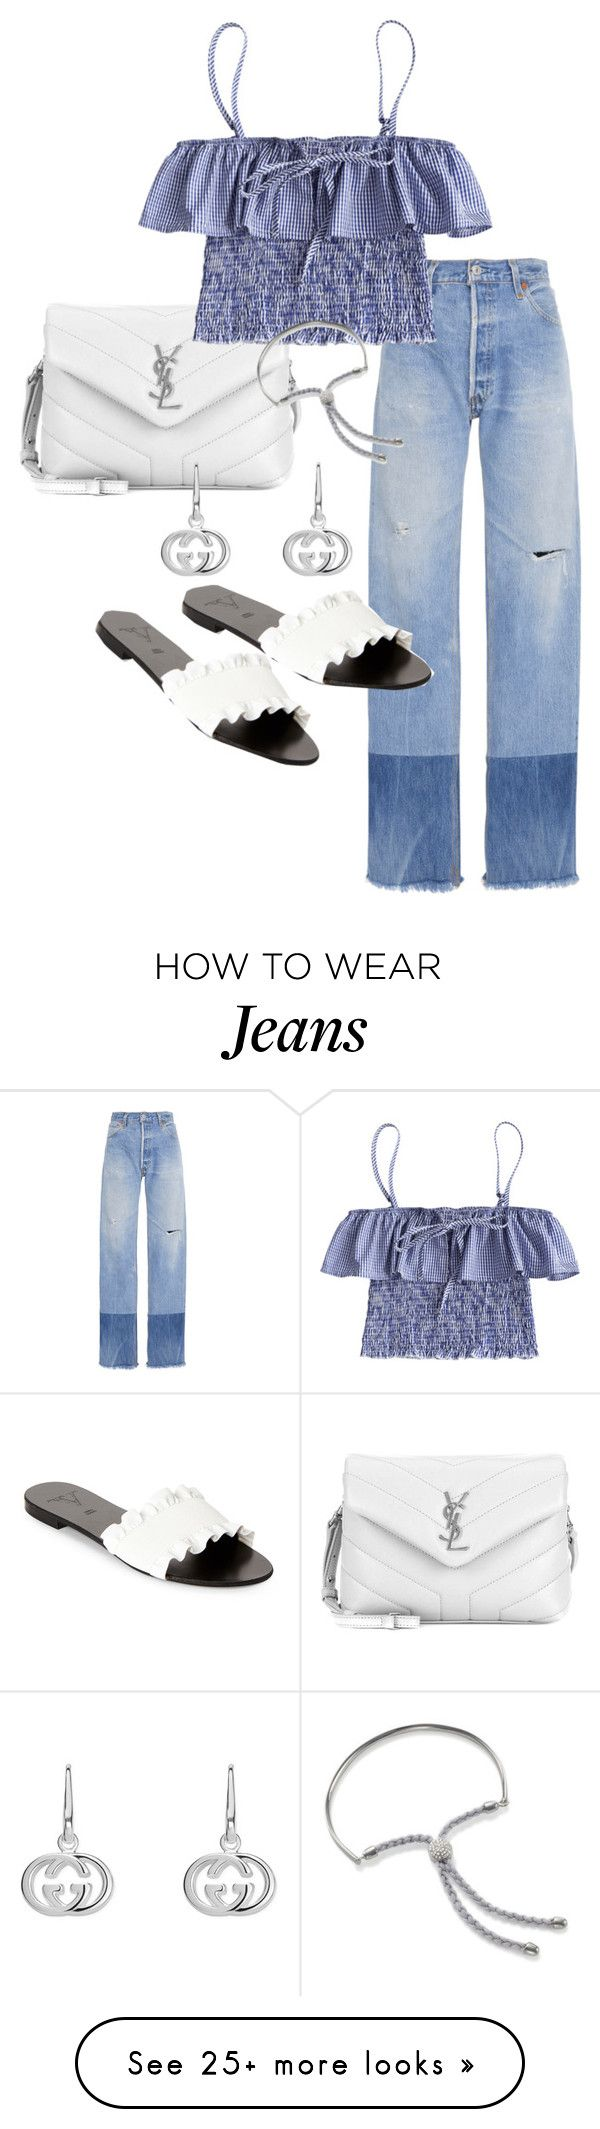 """Untitled #23683"" by florencia95 on Polyvore featuring RE/DONE, Yves Saint Laurent, Victor, Gucci and Monica Vinader"